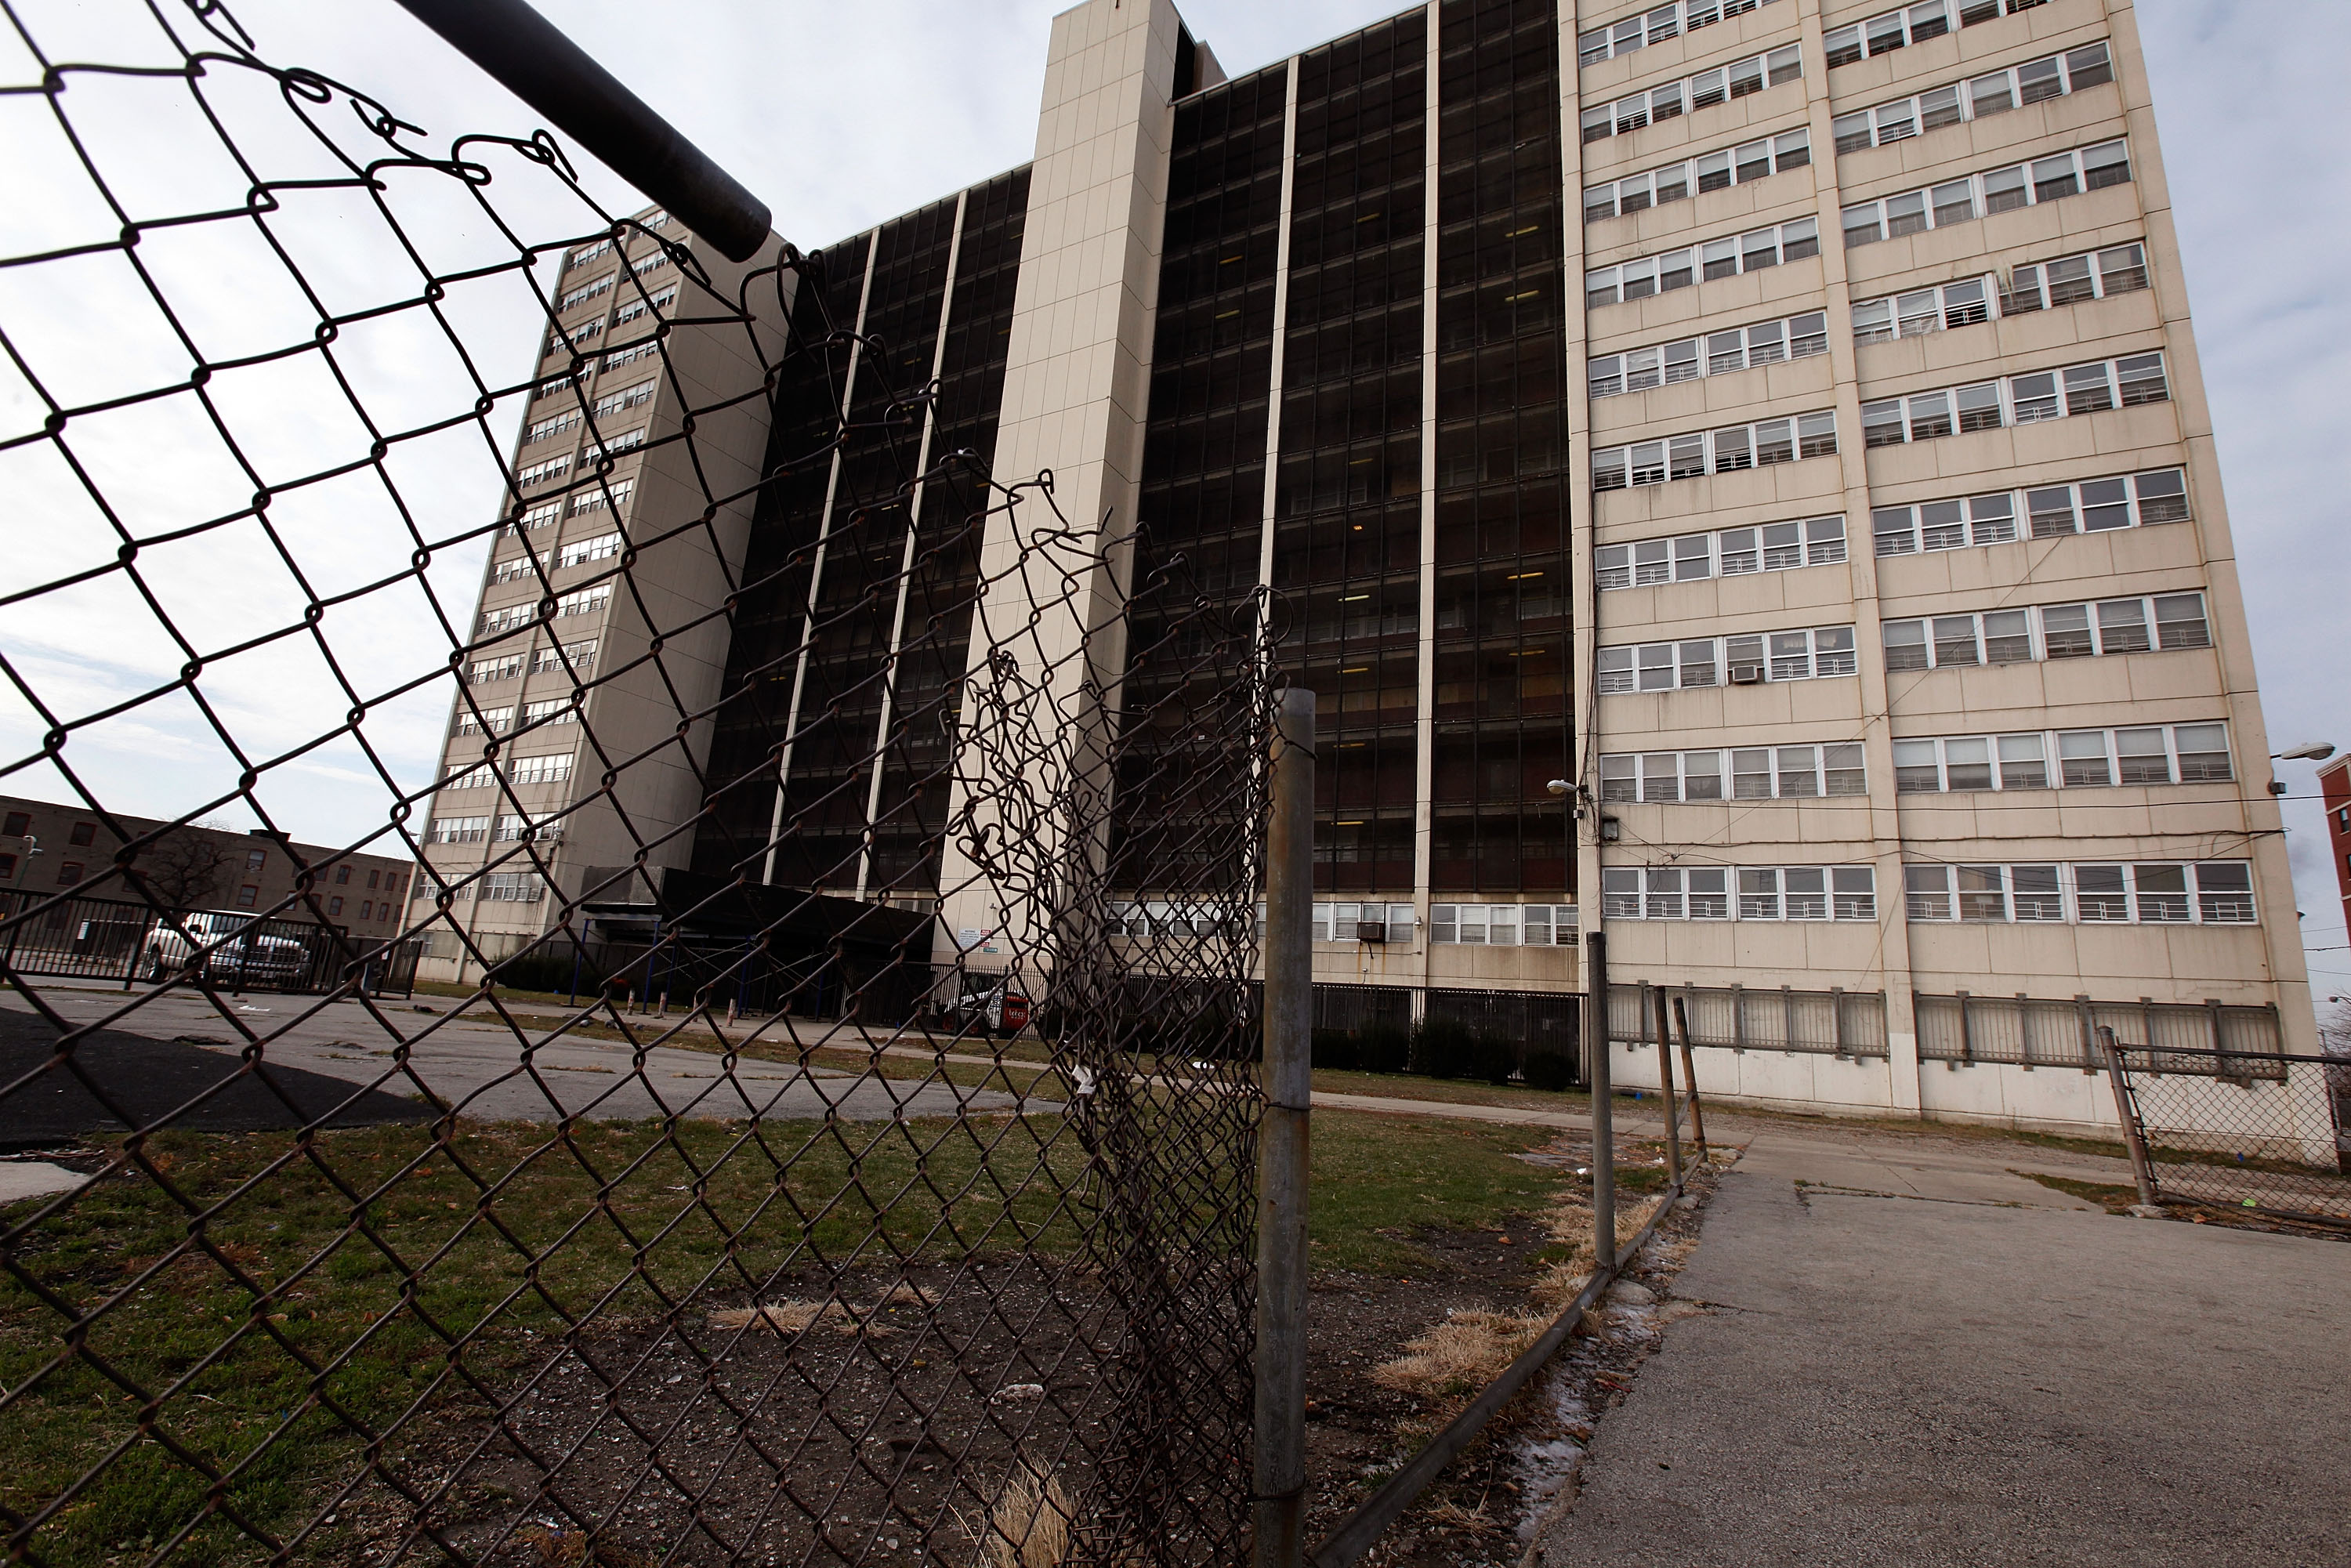 Infamous Chicago Housing Project Cabrini-Green Closes Down